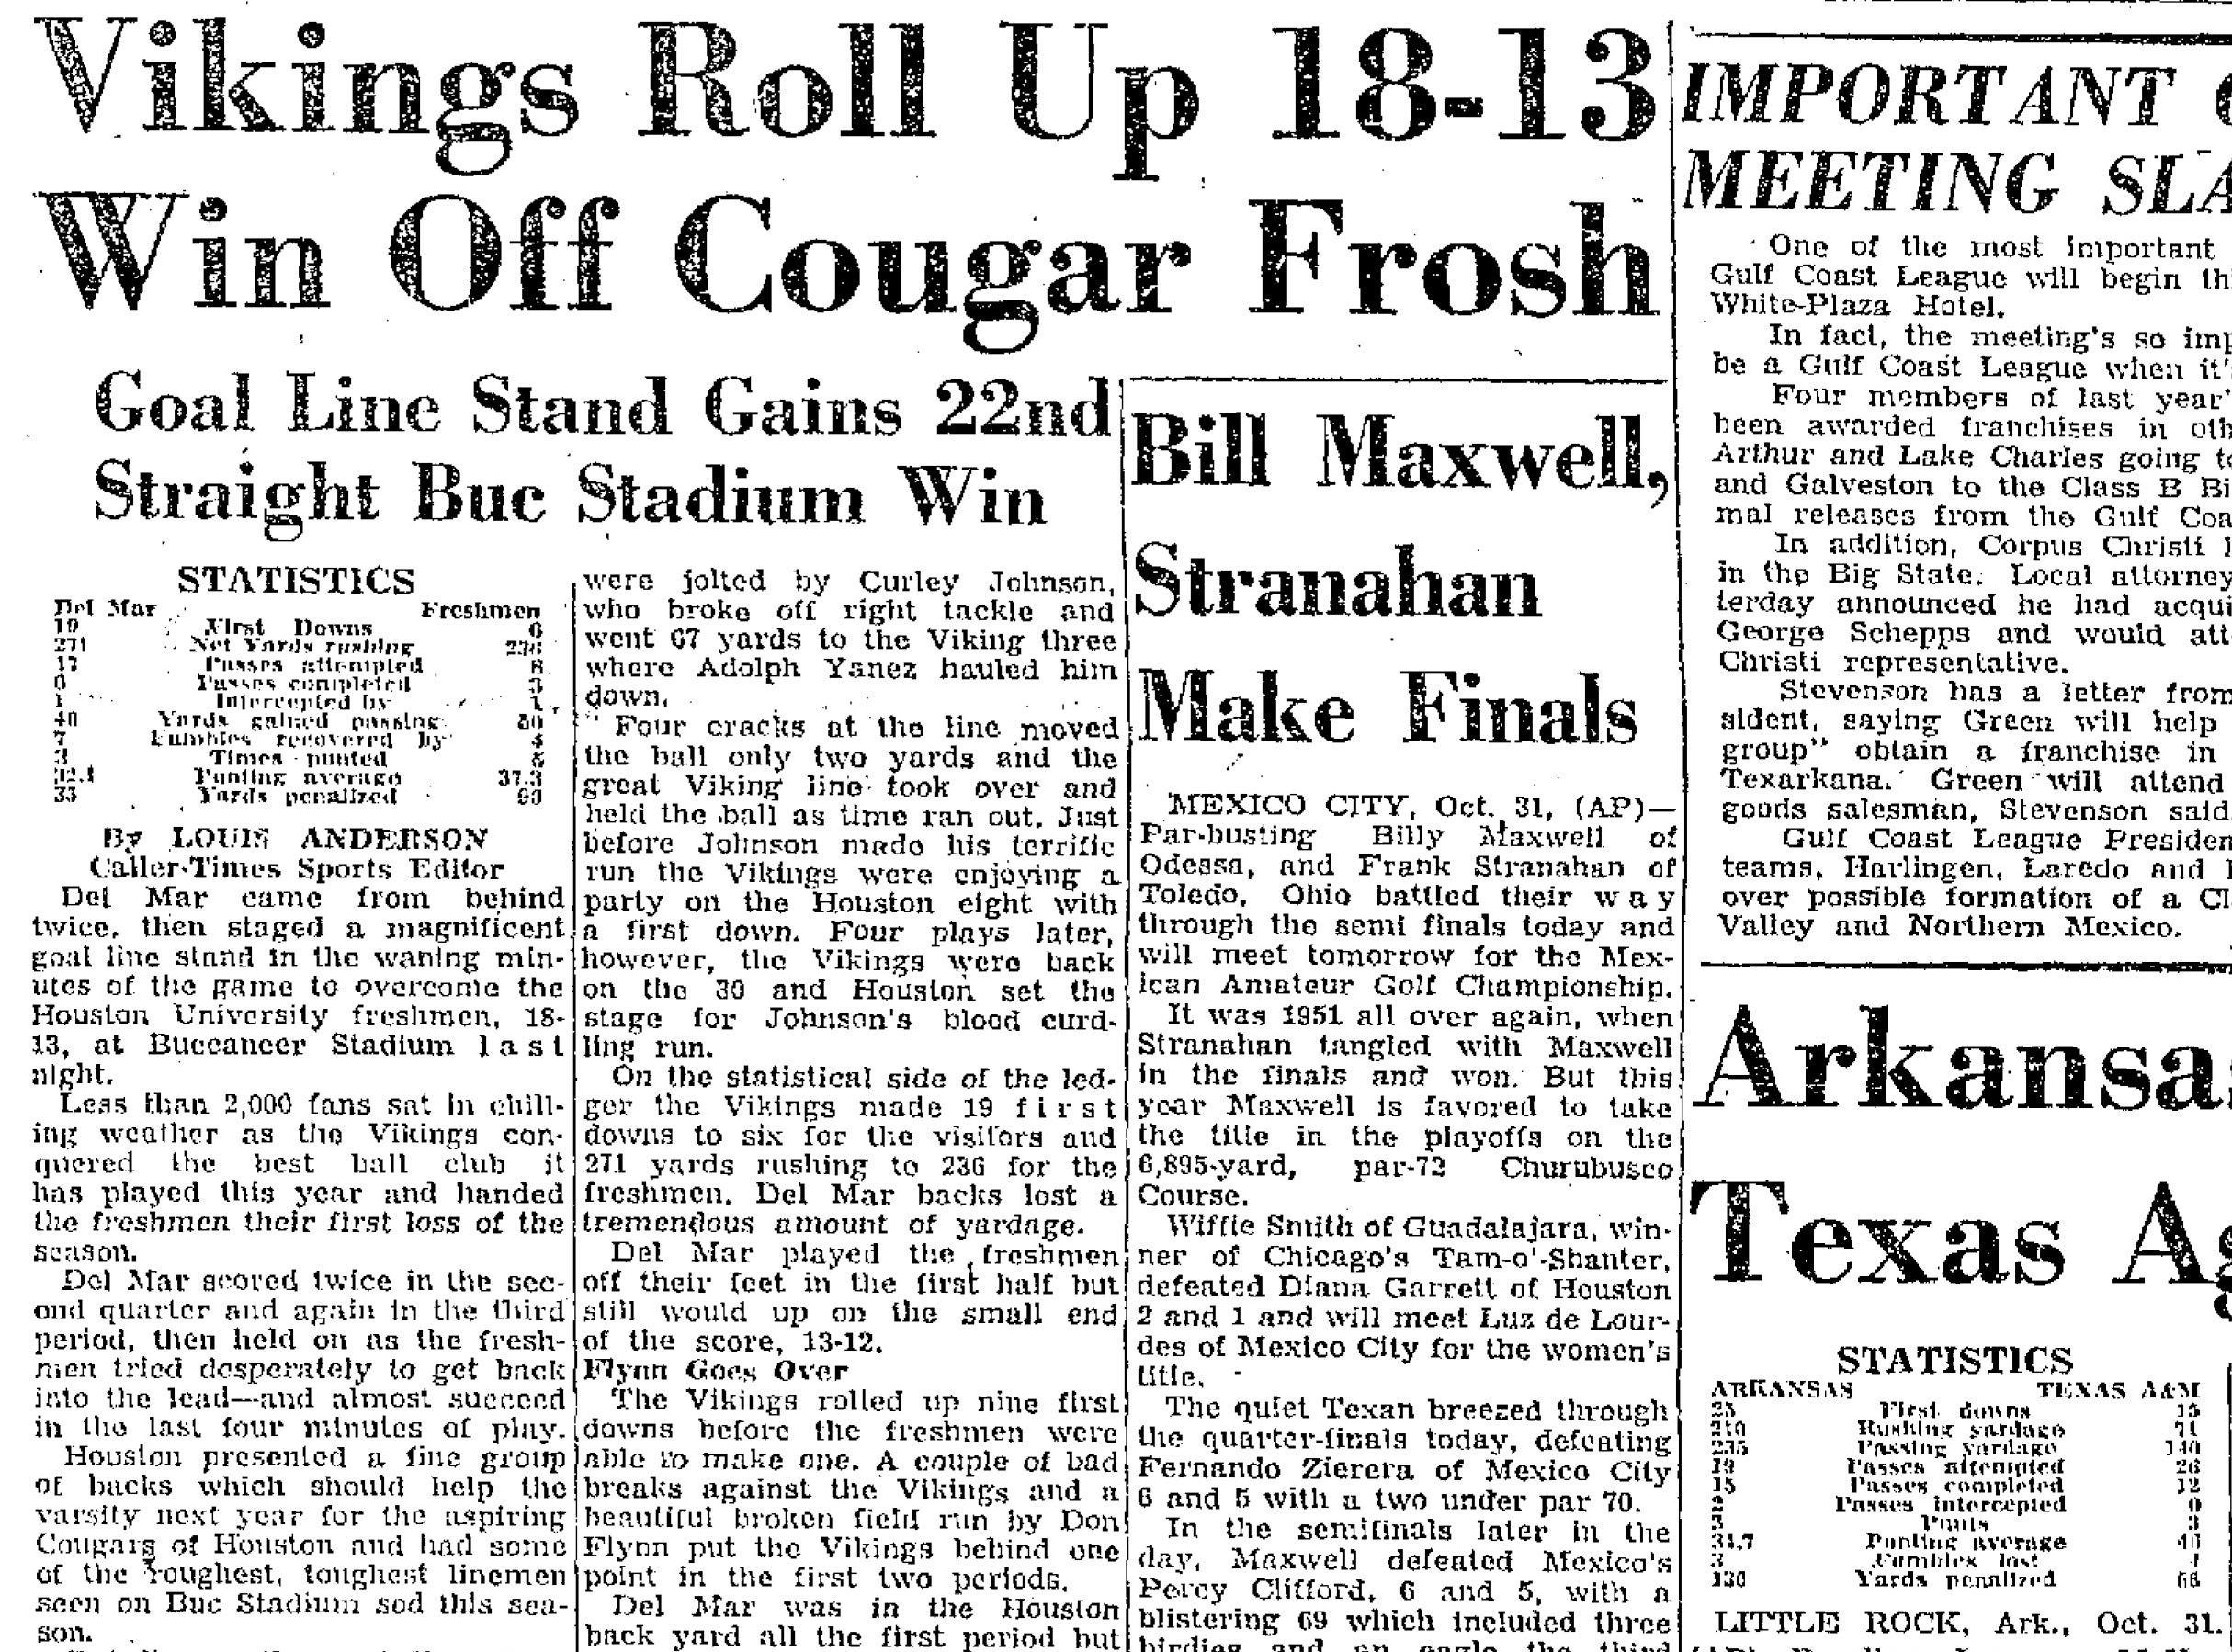 The Del Mar College Vikings played frequently at Buc Stadium, as seen in this Nov. 1, 1953 clipping from the Caller-Times.